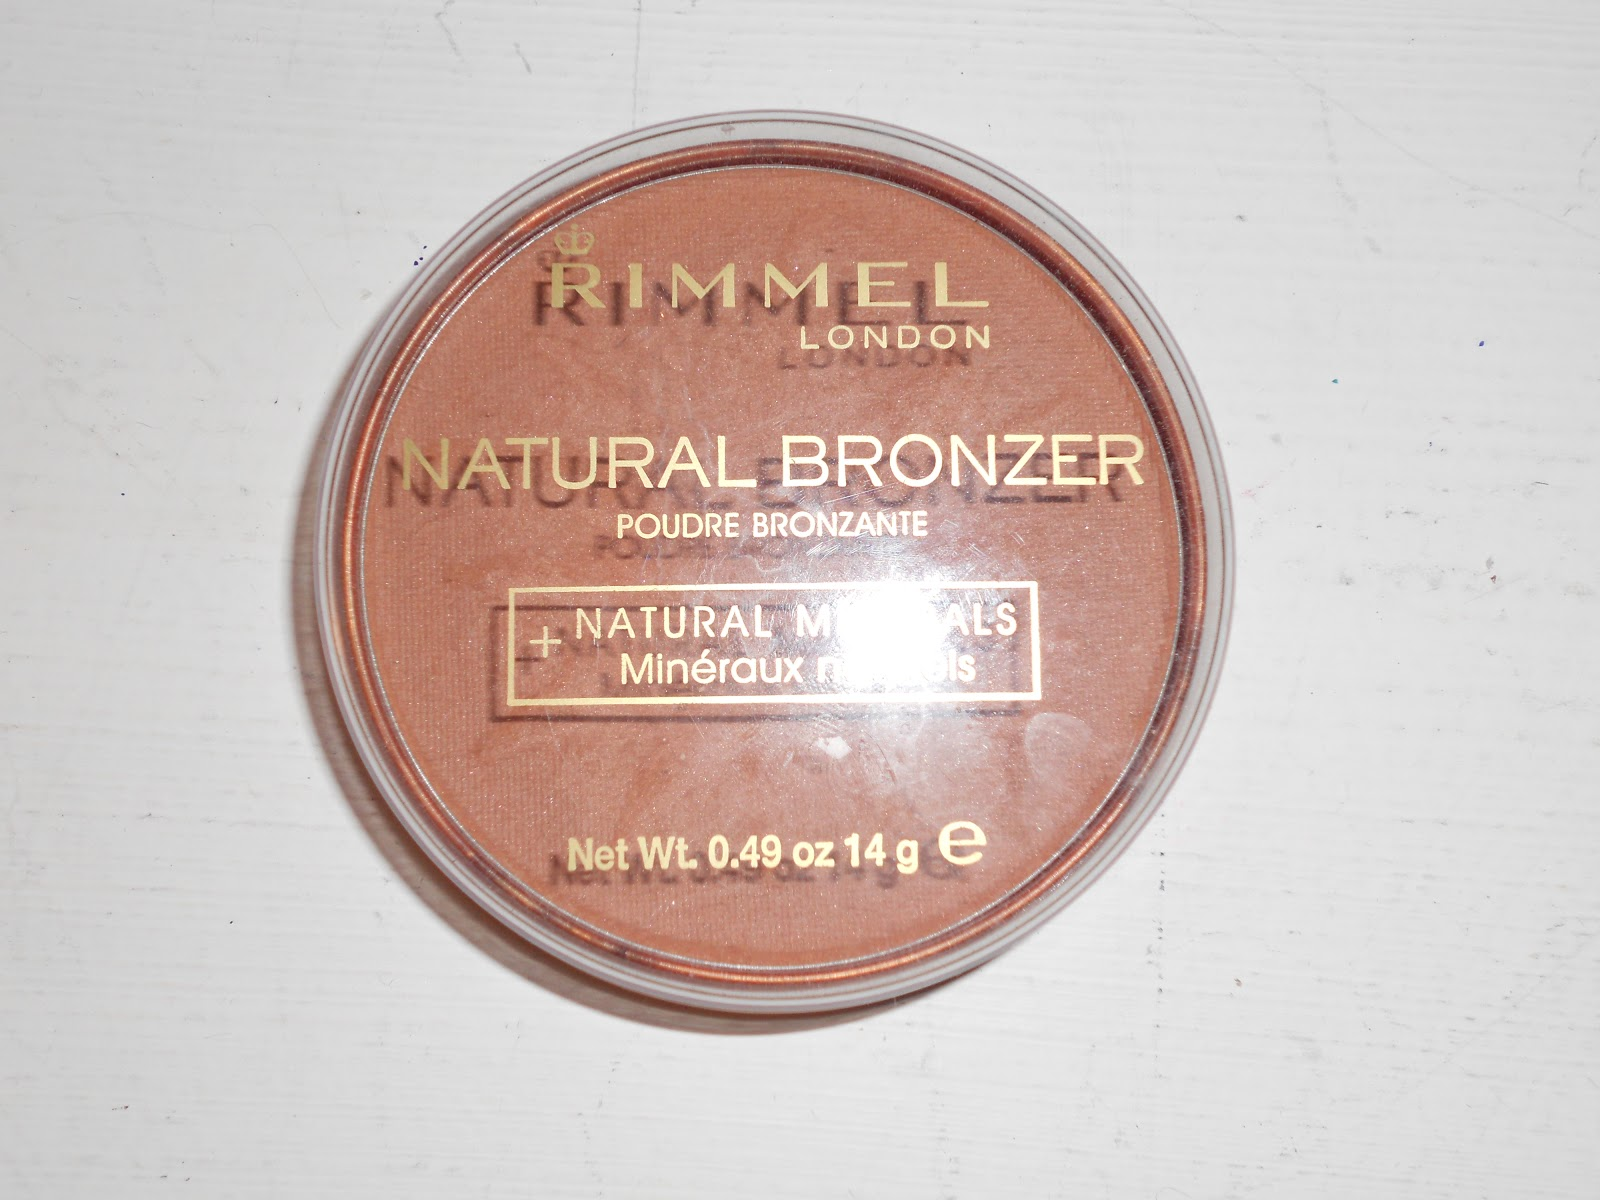 Ally S Beauty Blog Rimmel London Natural Bronzer In Shade